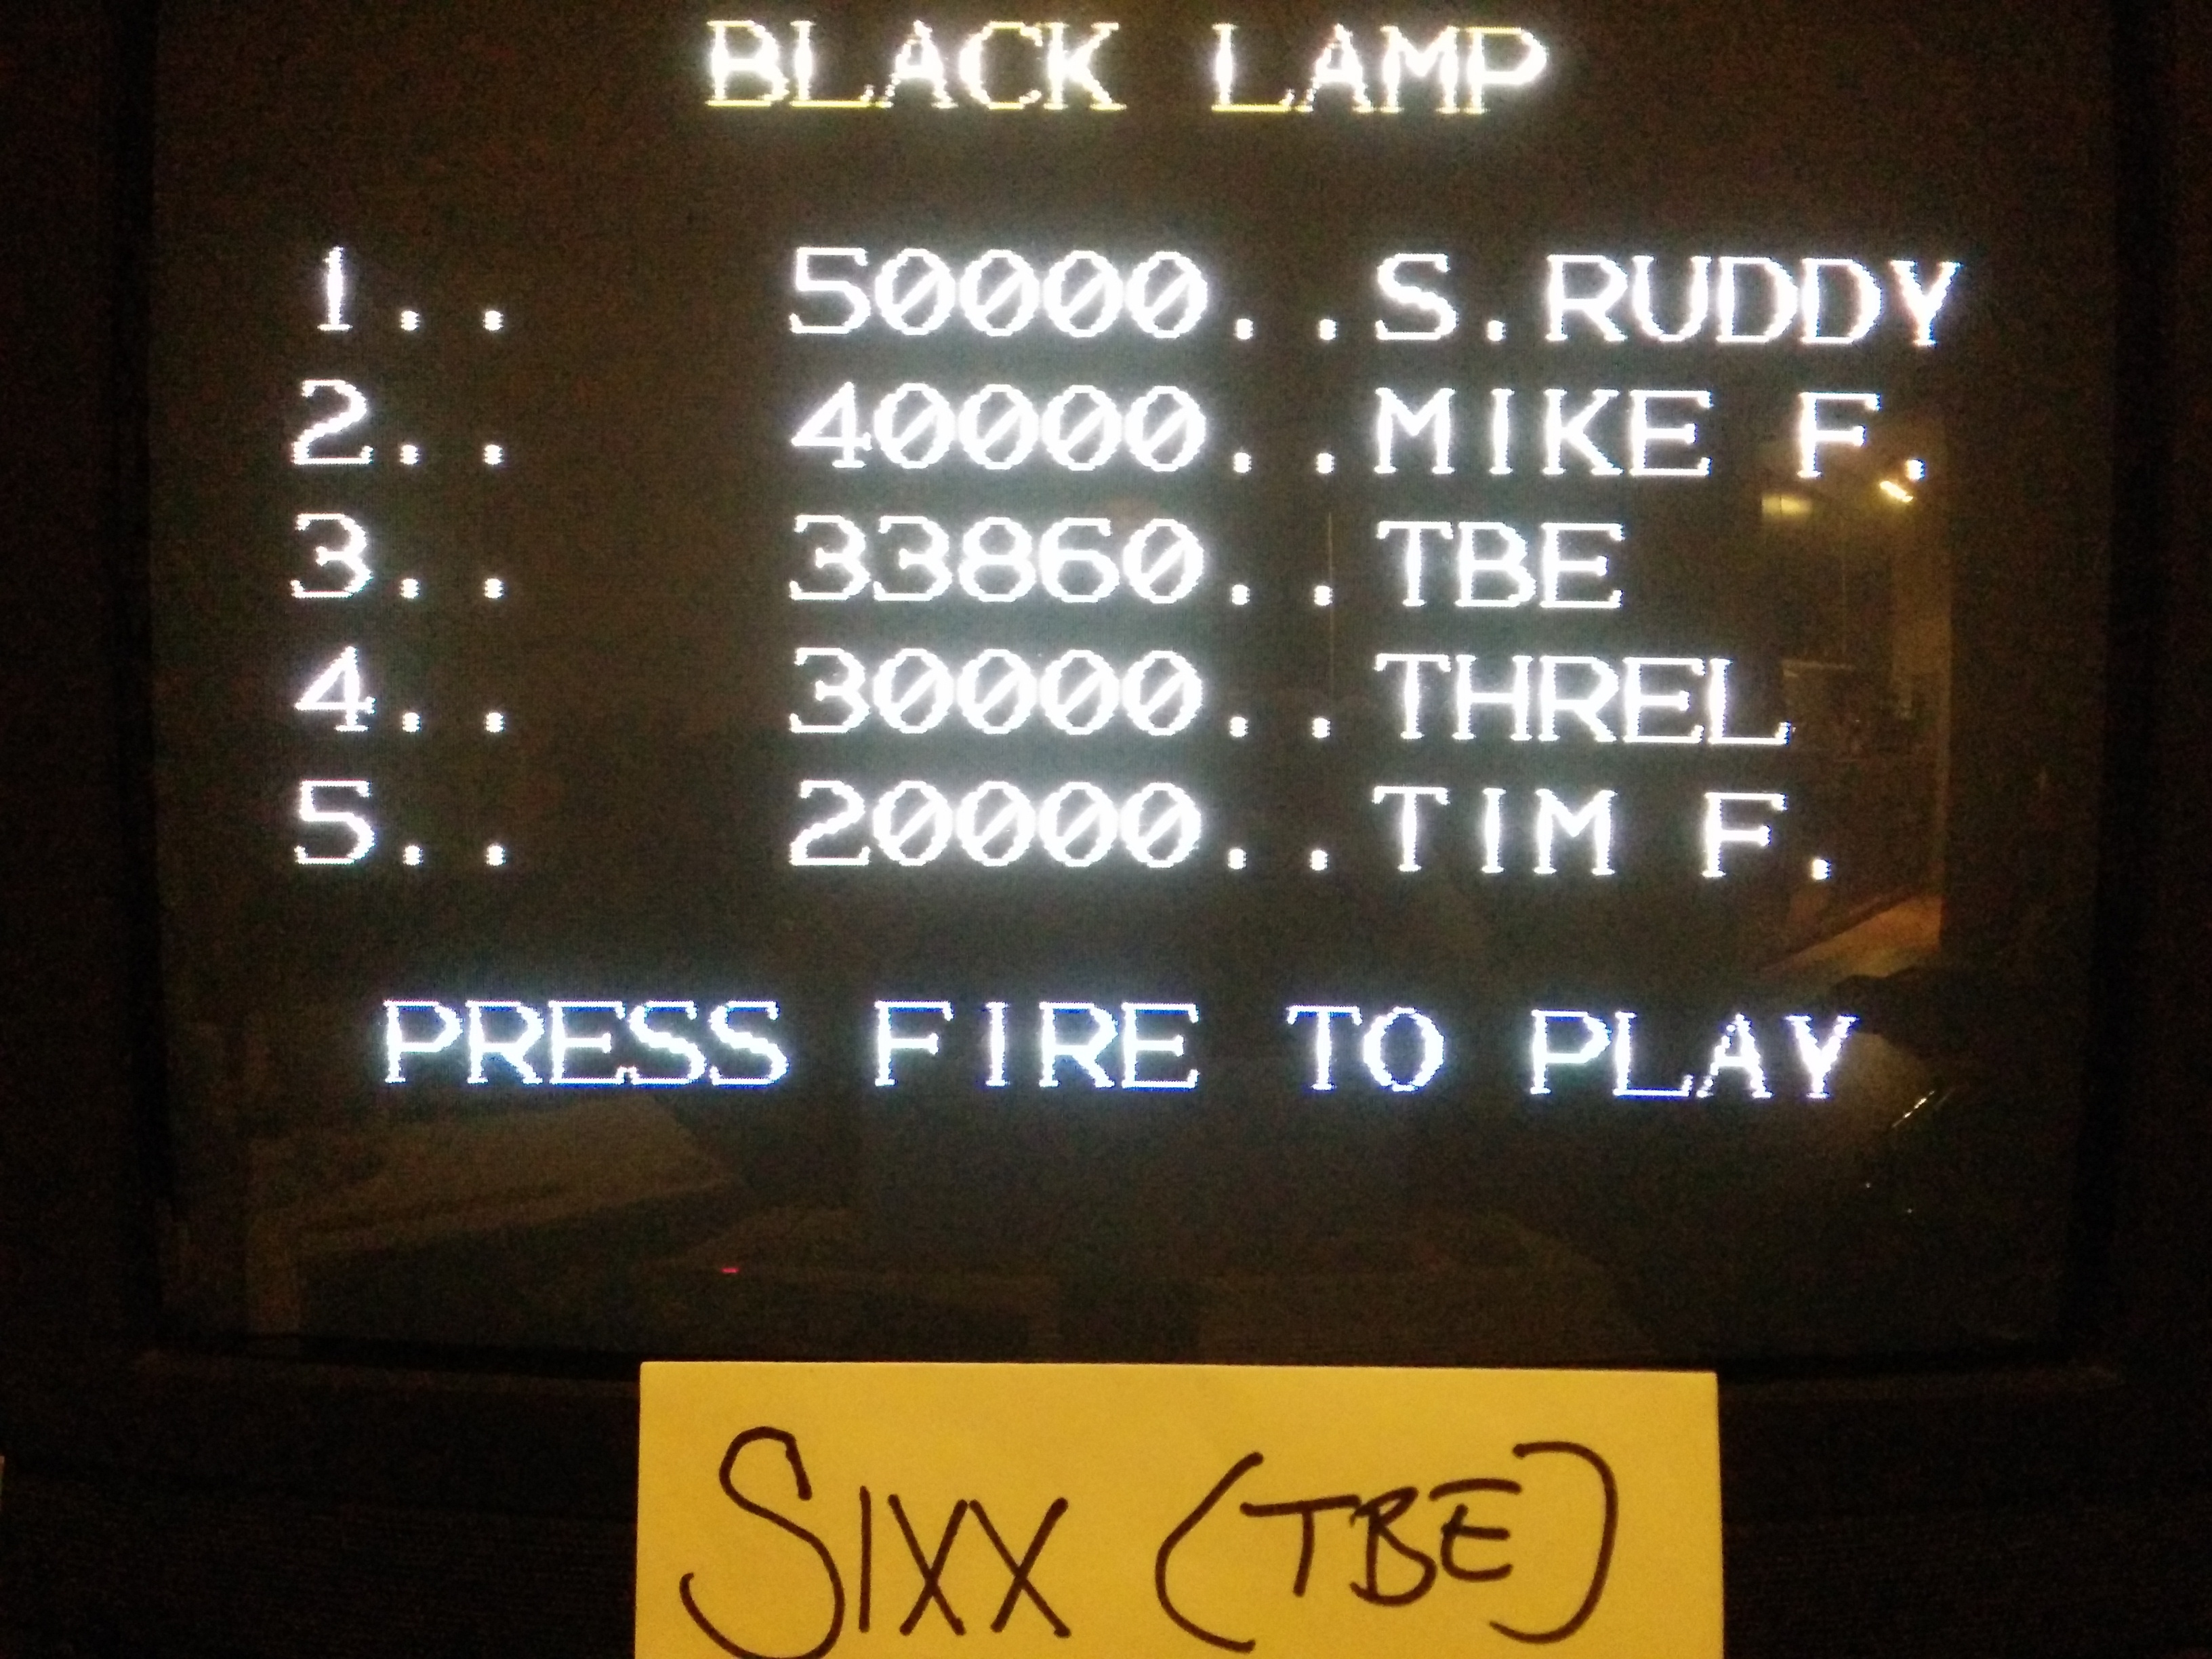 Sixx: Black Lamp (Commodore 64) 33,860 points on 2014-04-24 15:08:48